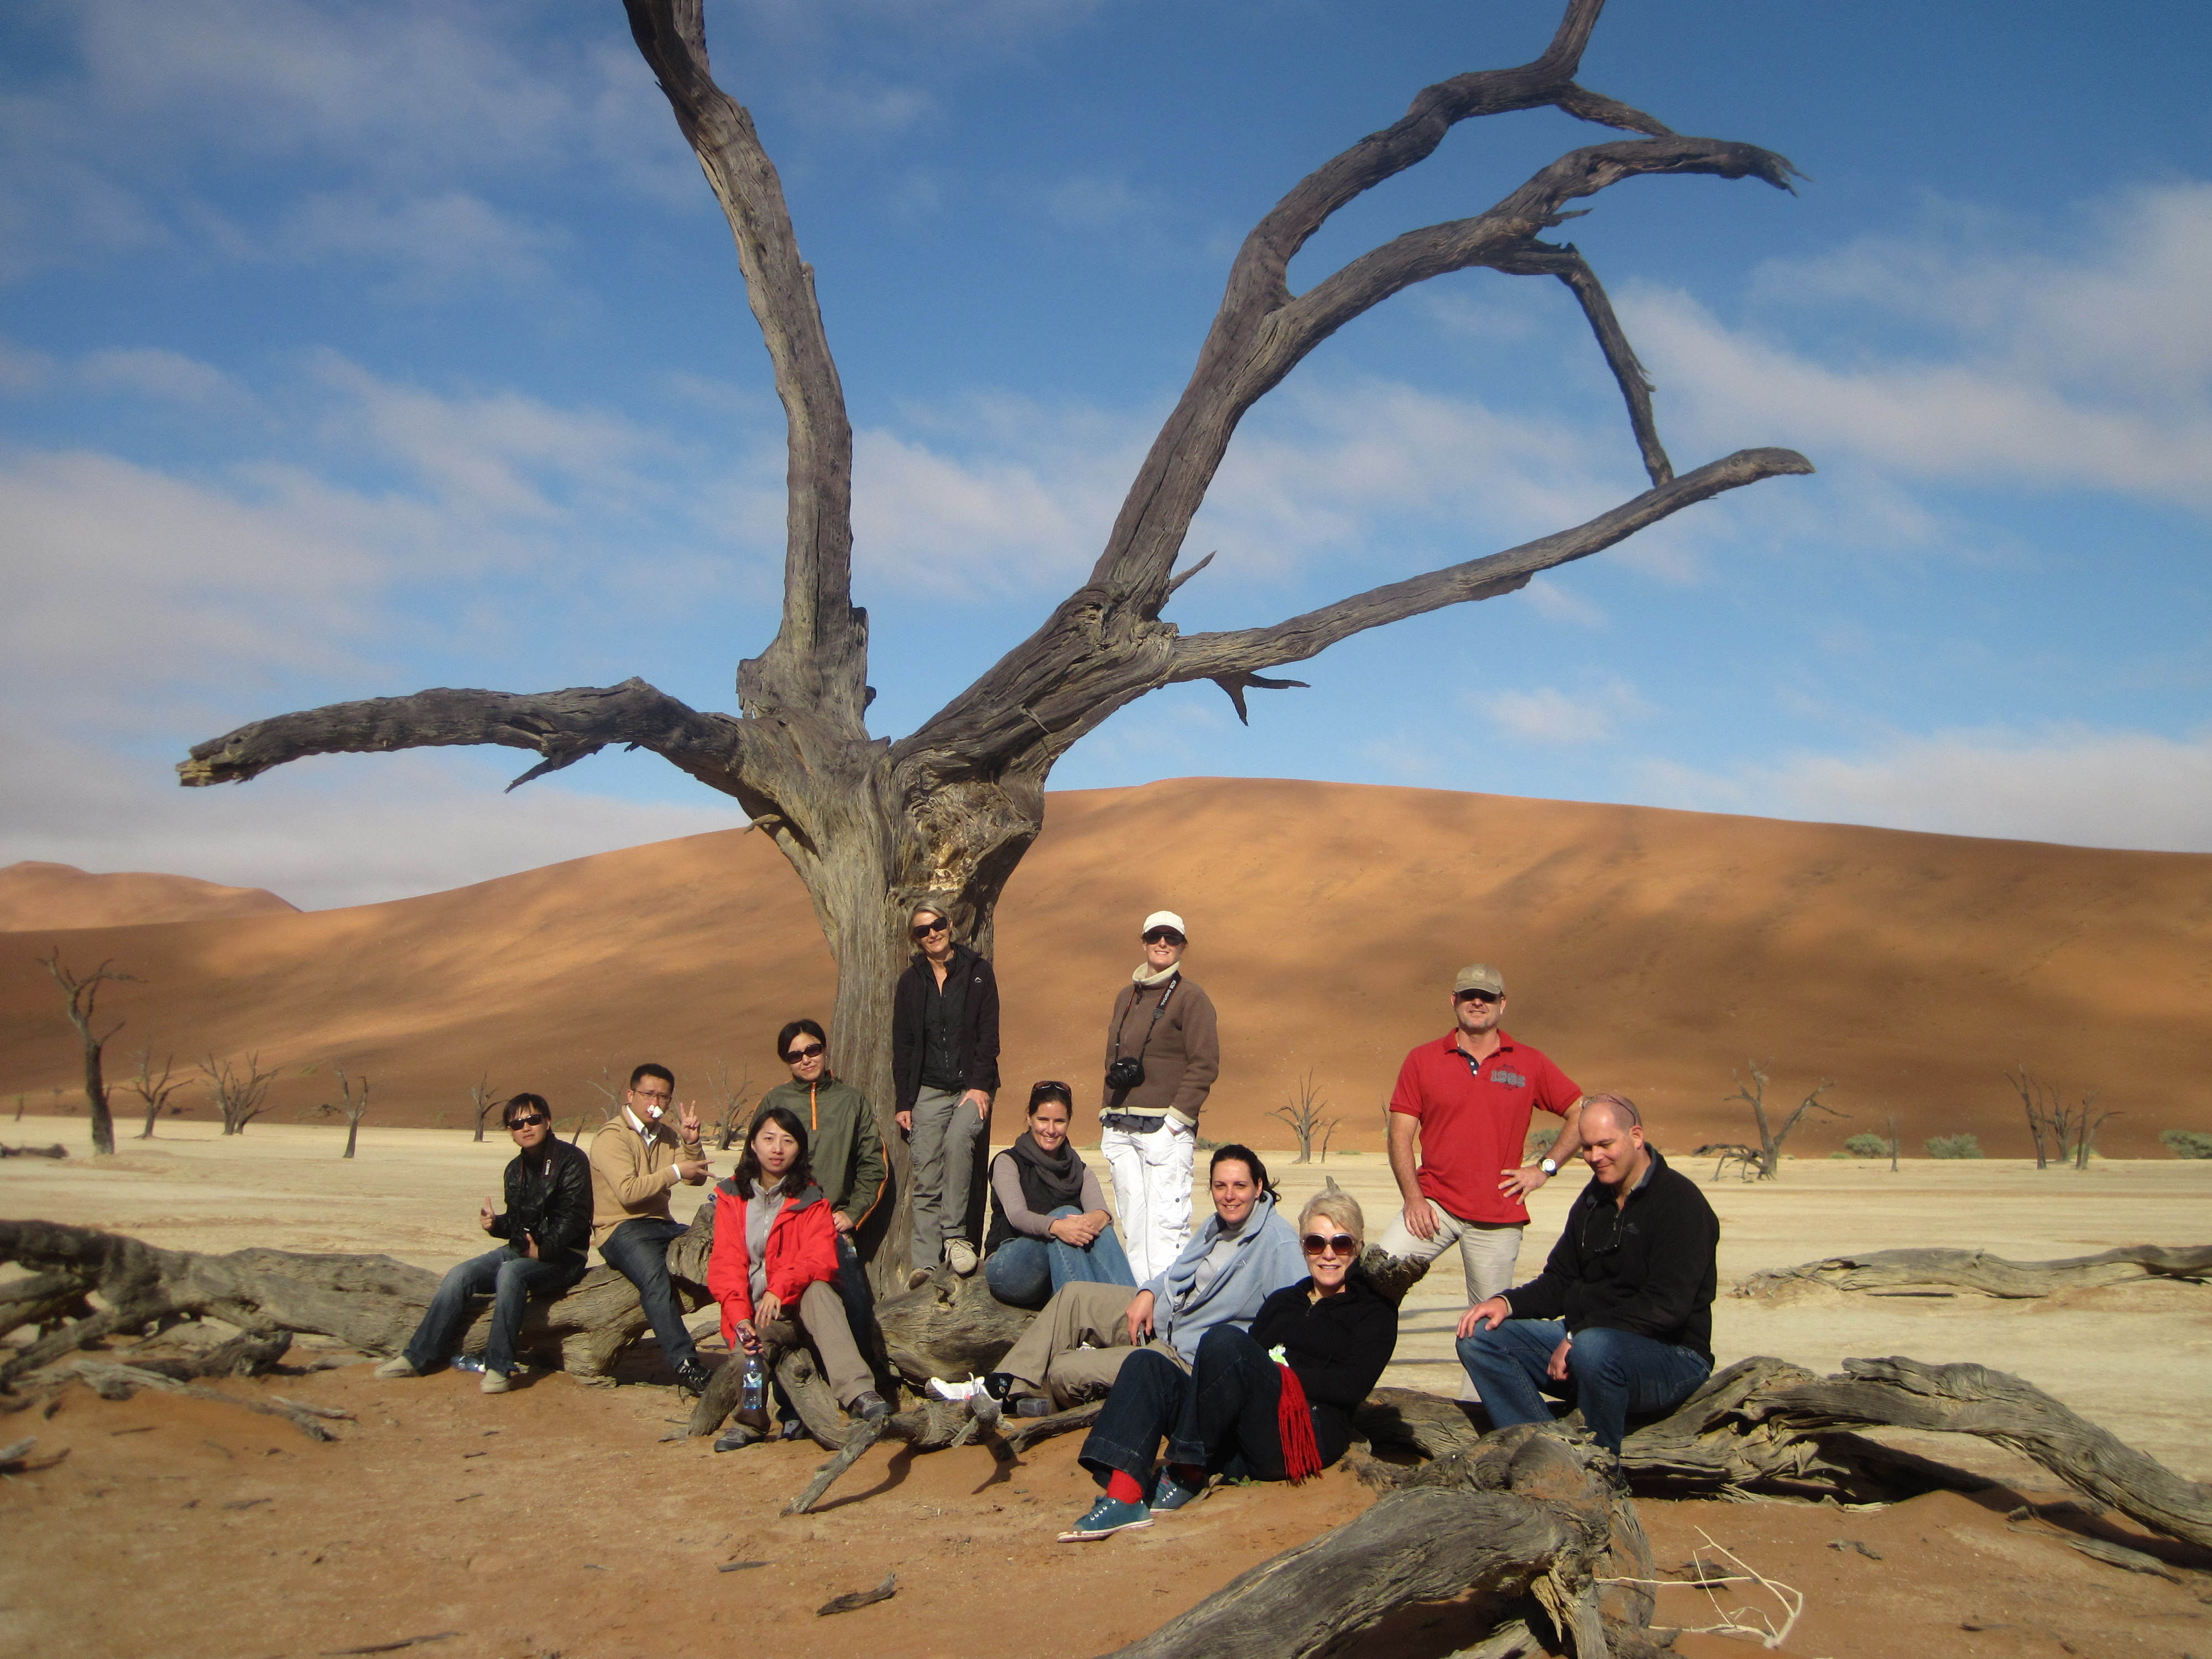 An overlanding group at the Dead Vlei, Namibia